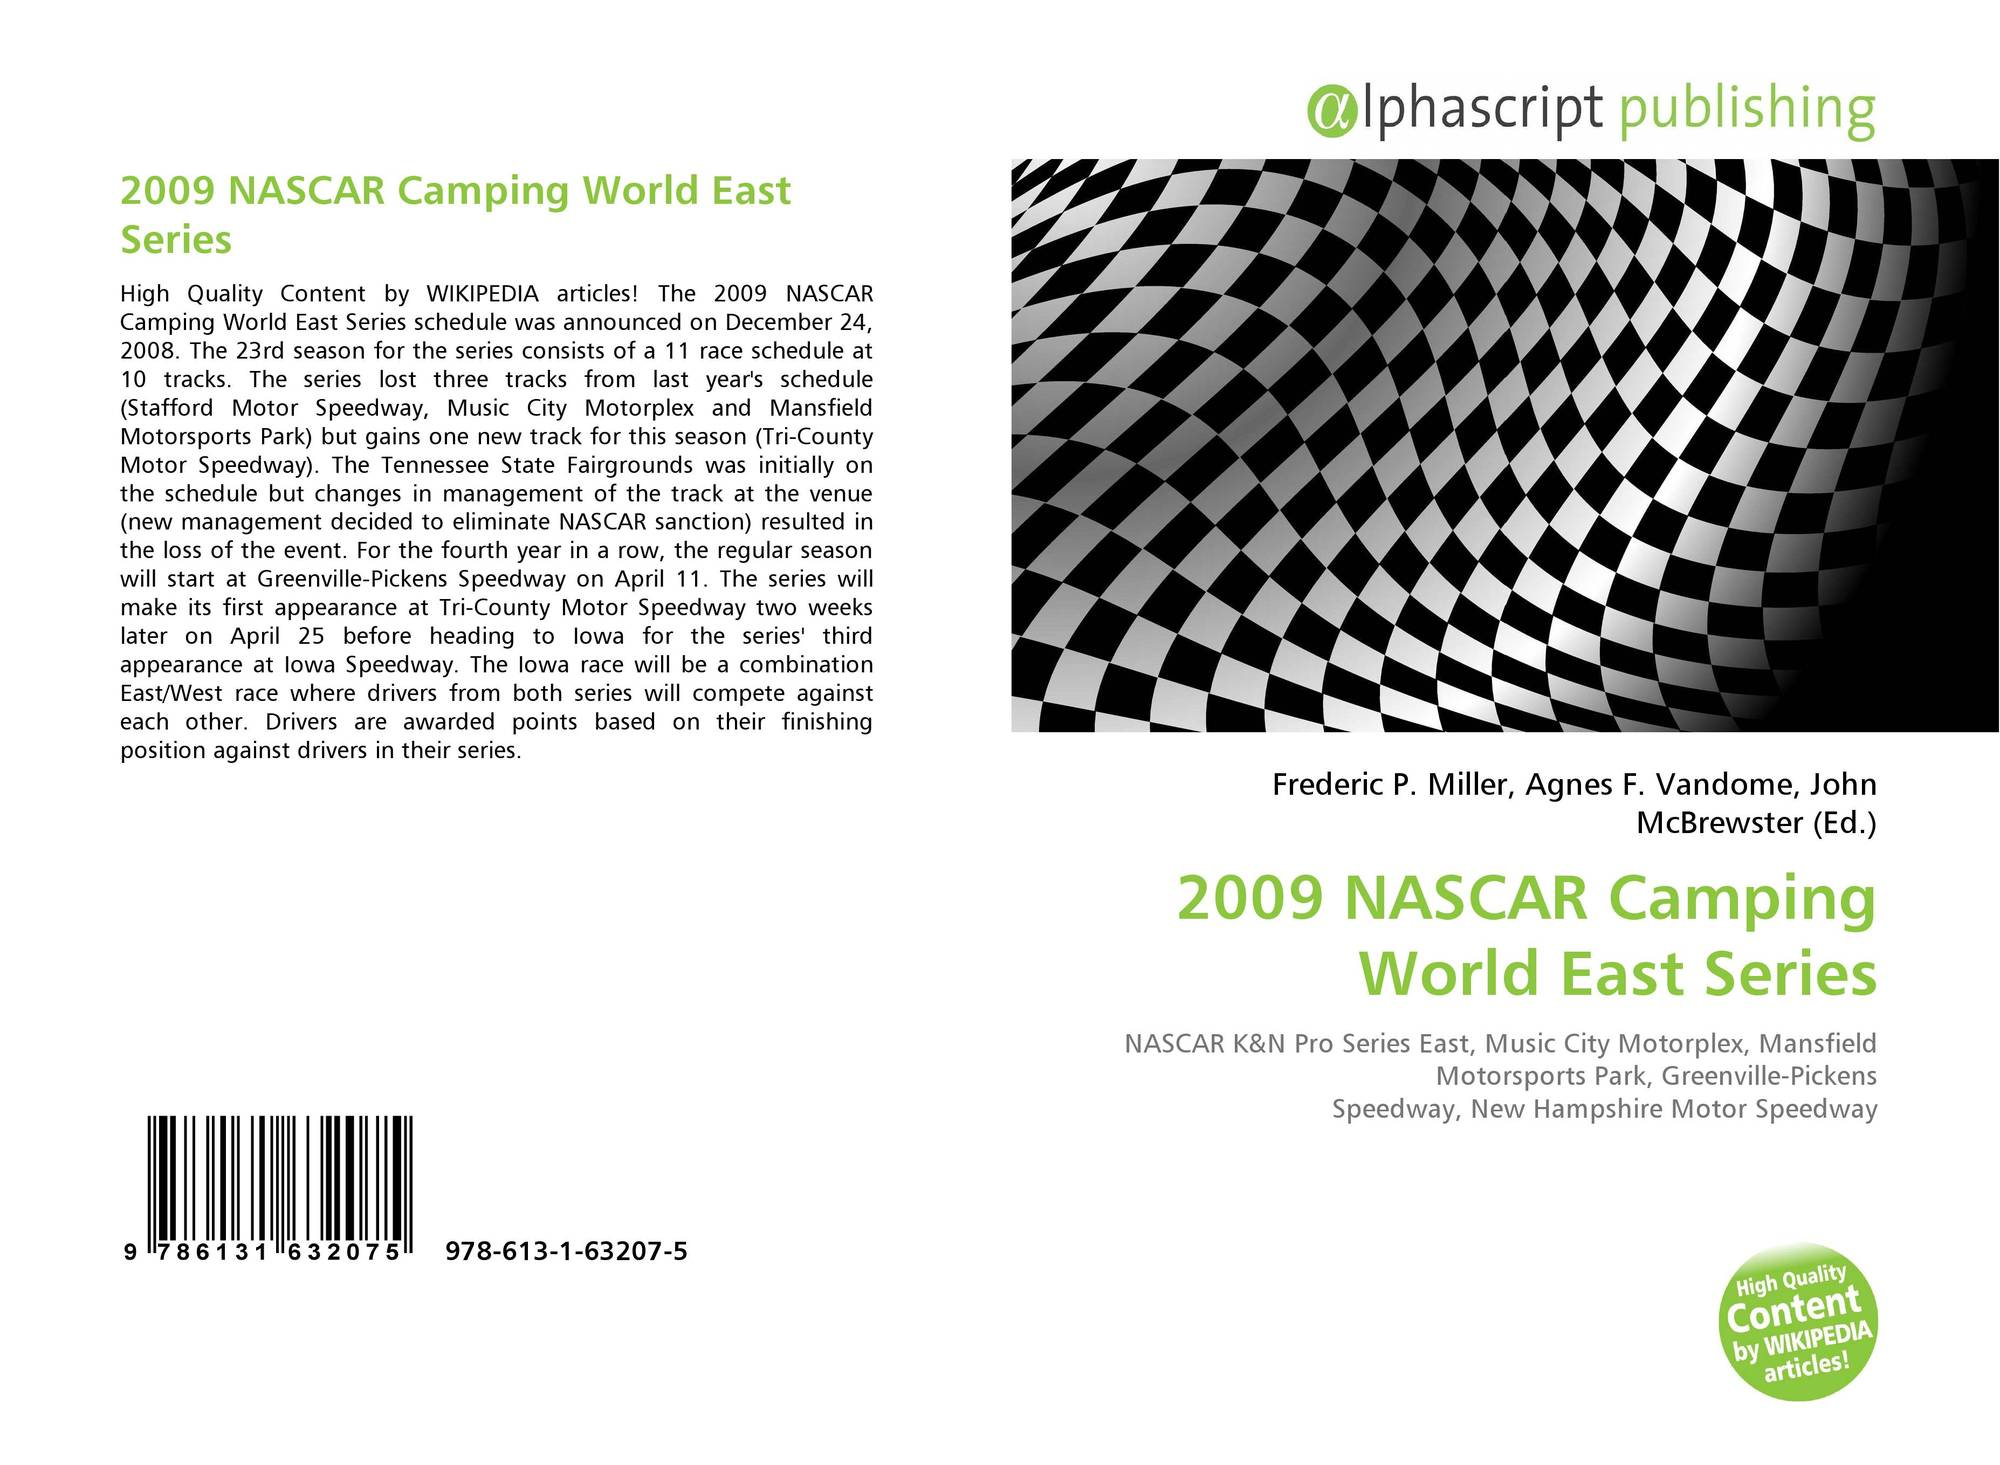 cfc86995f Bookcover of 2009 NASCAR Camping World East Series. 9786131632075